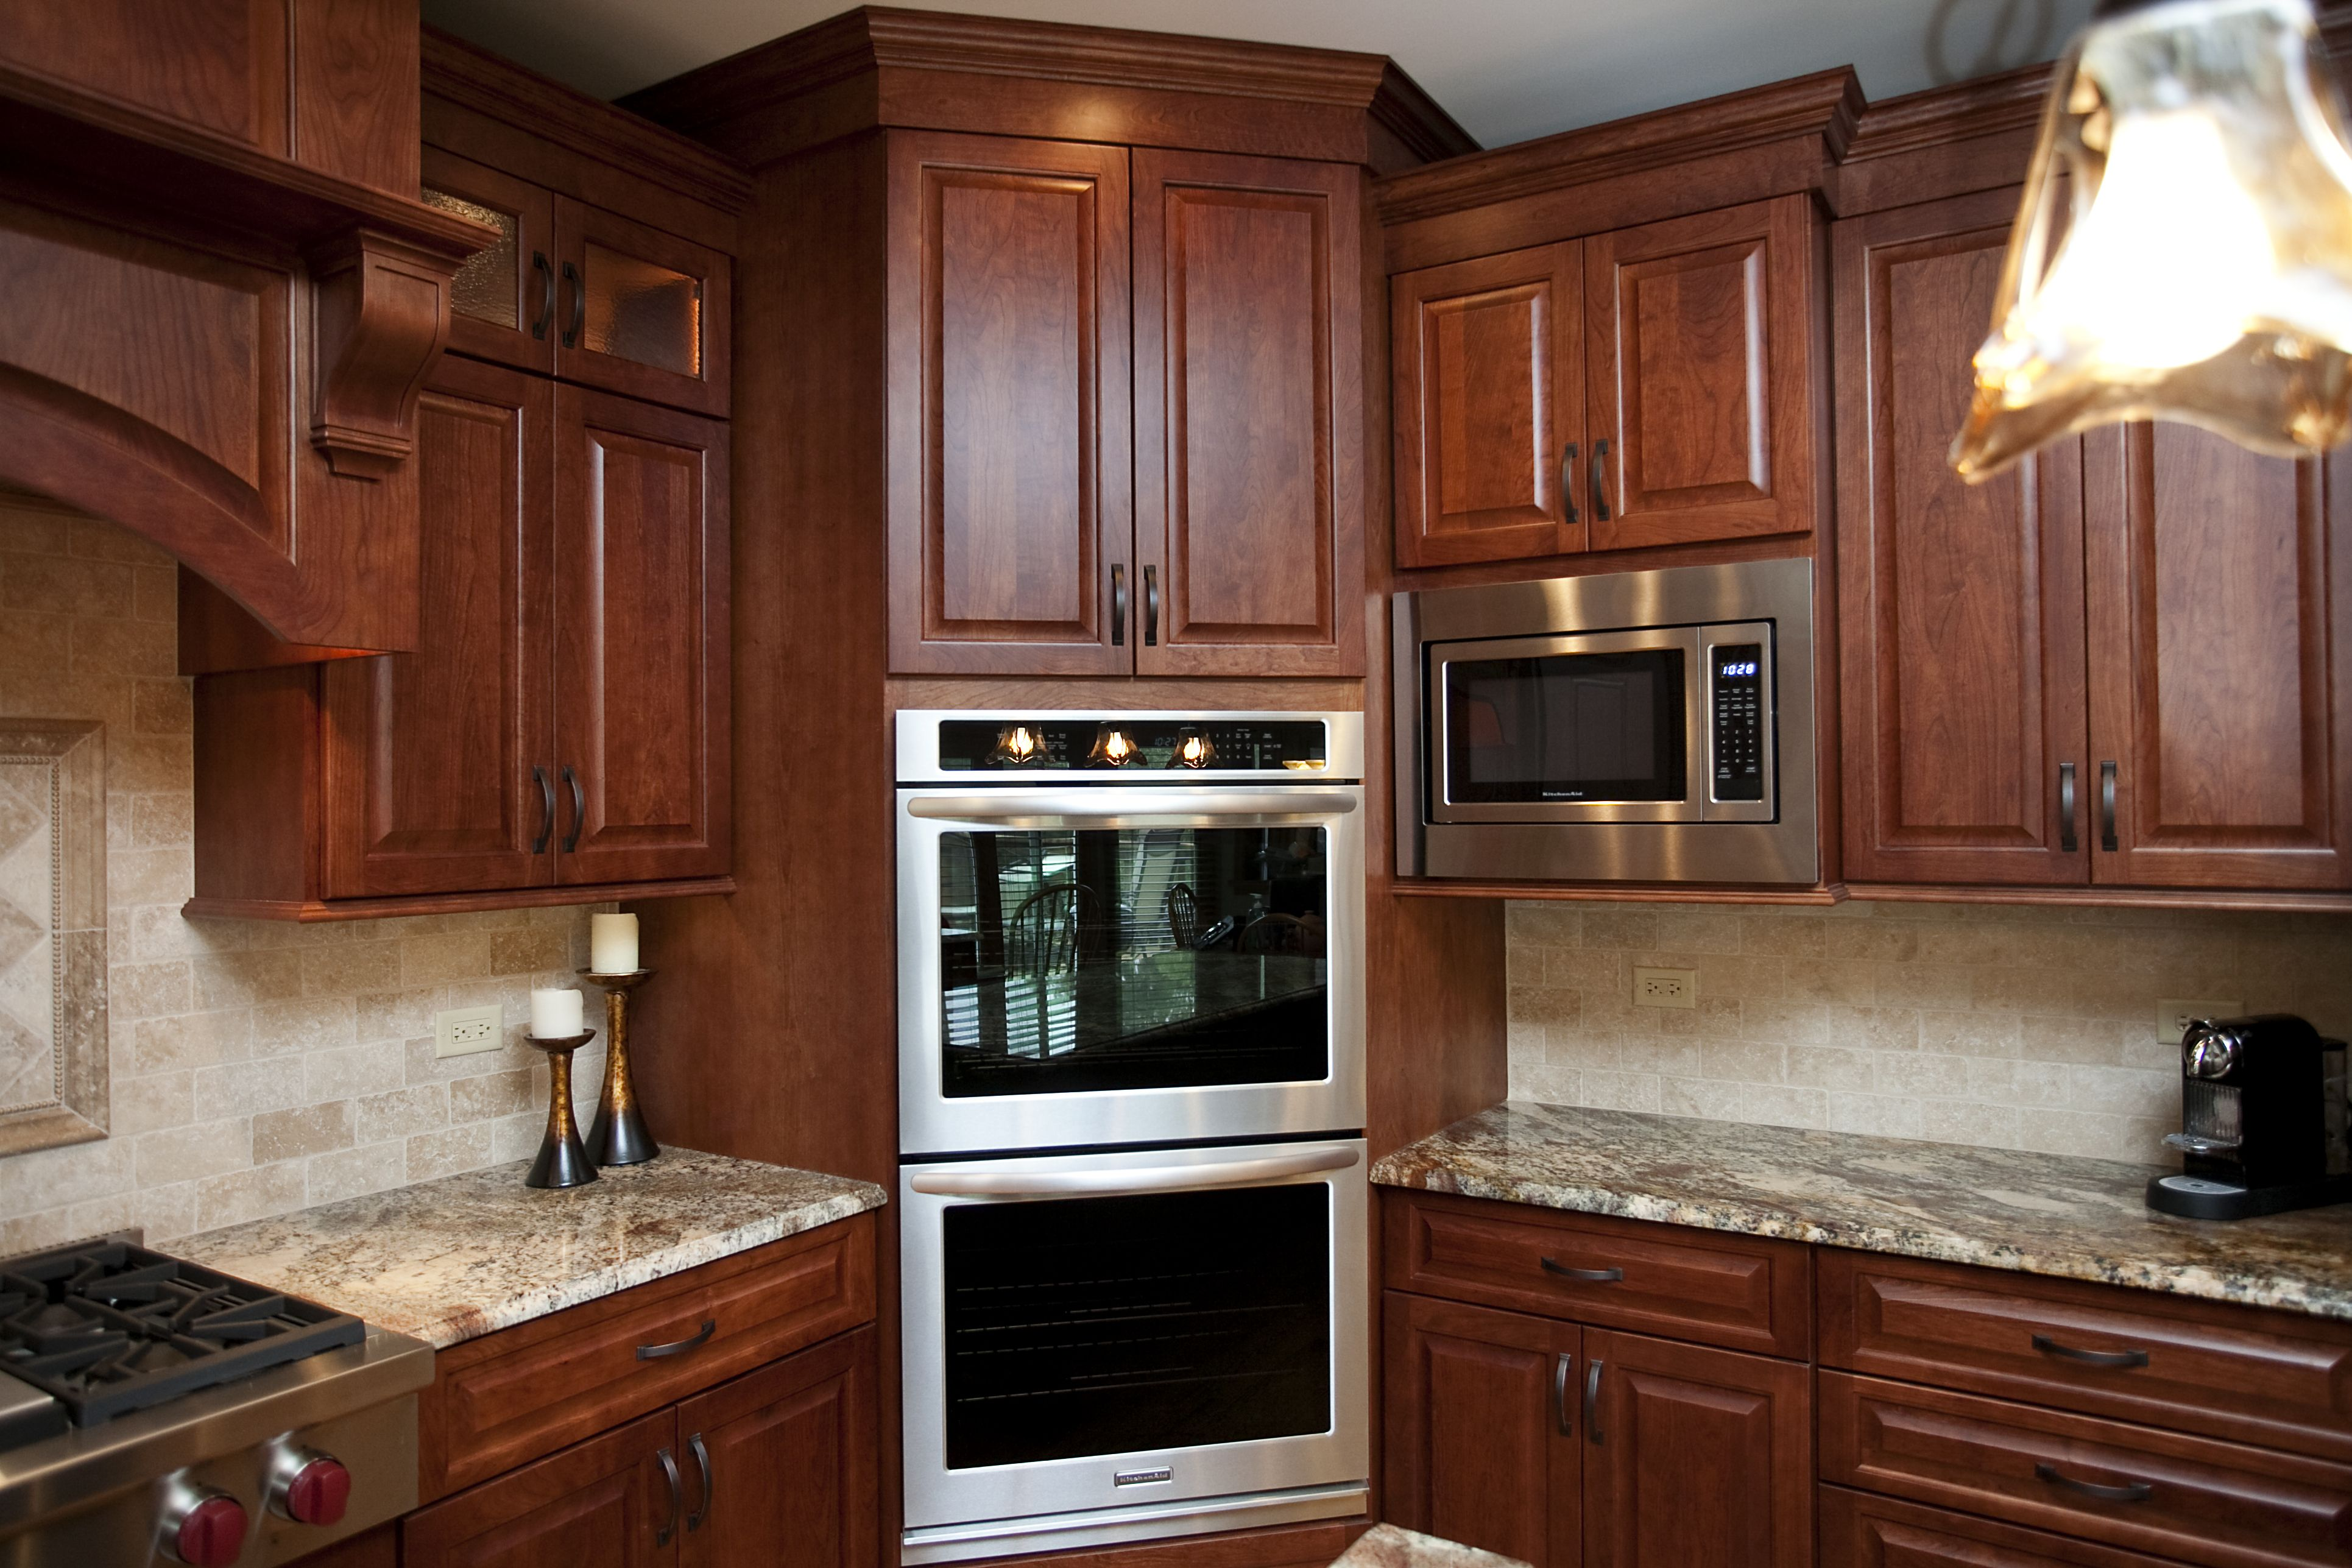 Space Saver Cabinets Kitchen Corner Double Oven Space Saver The House